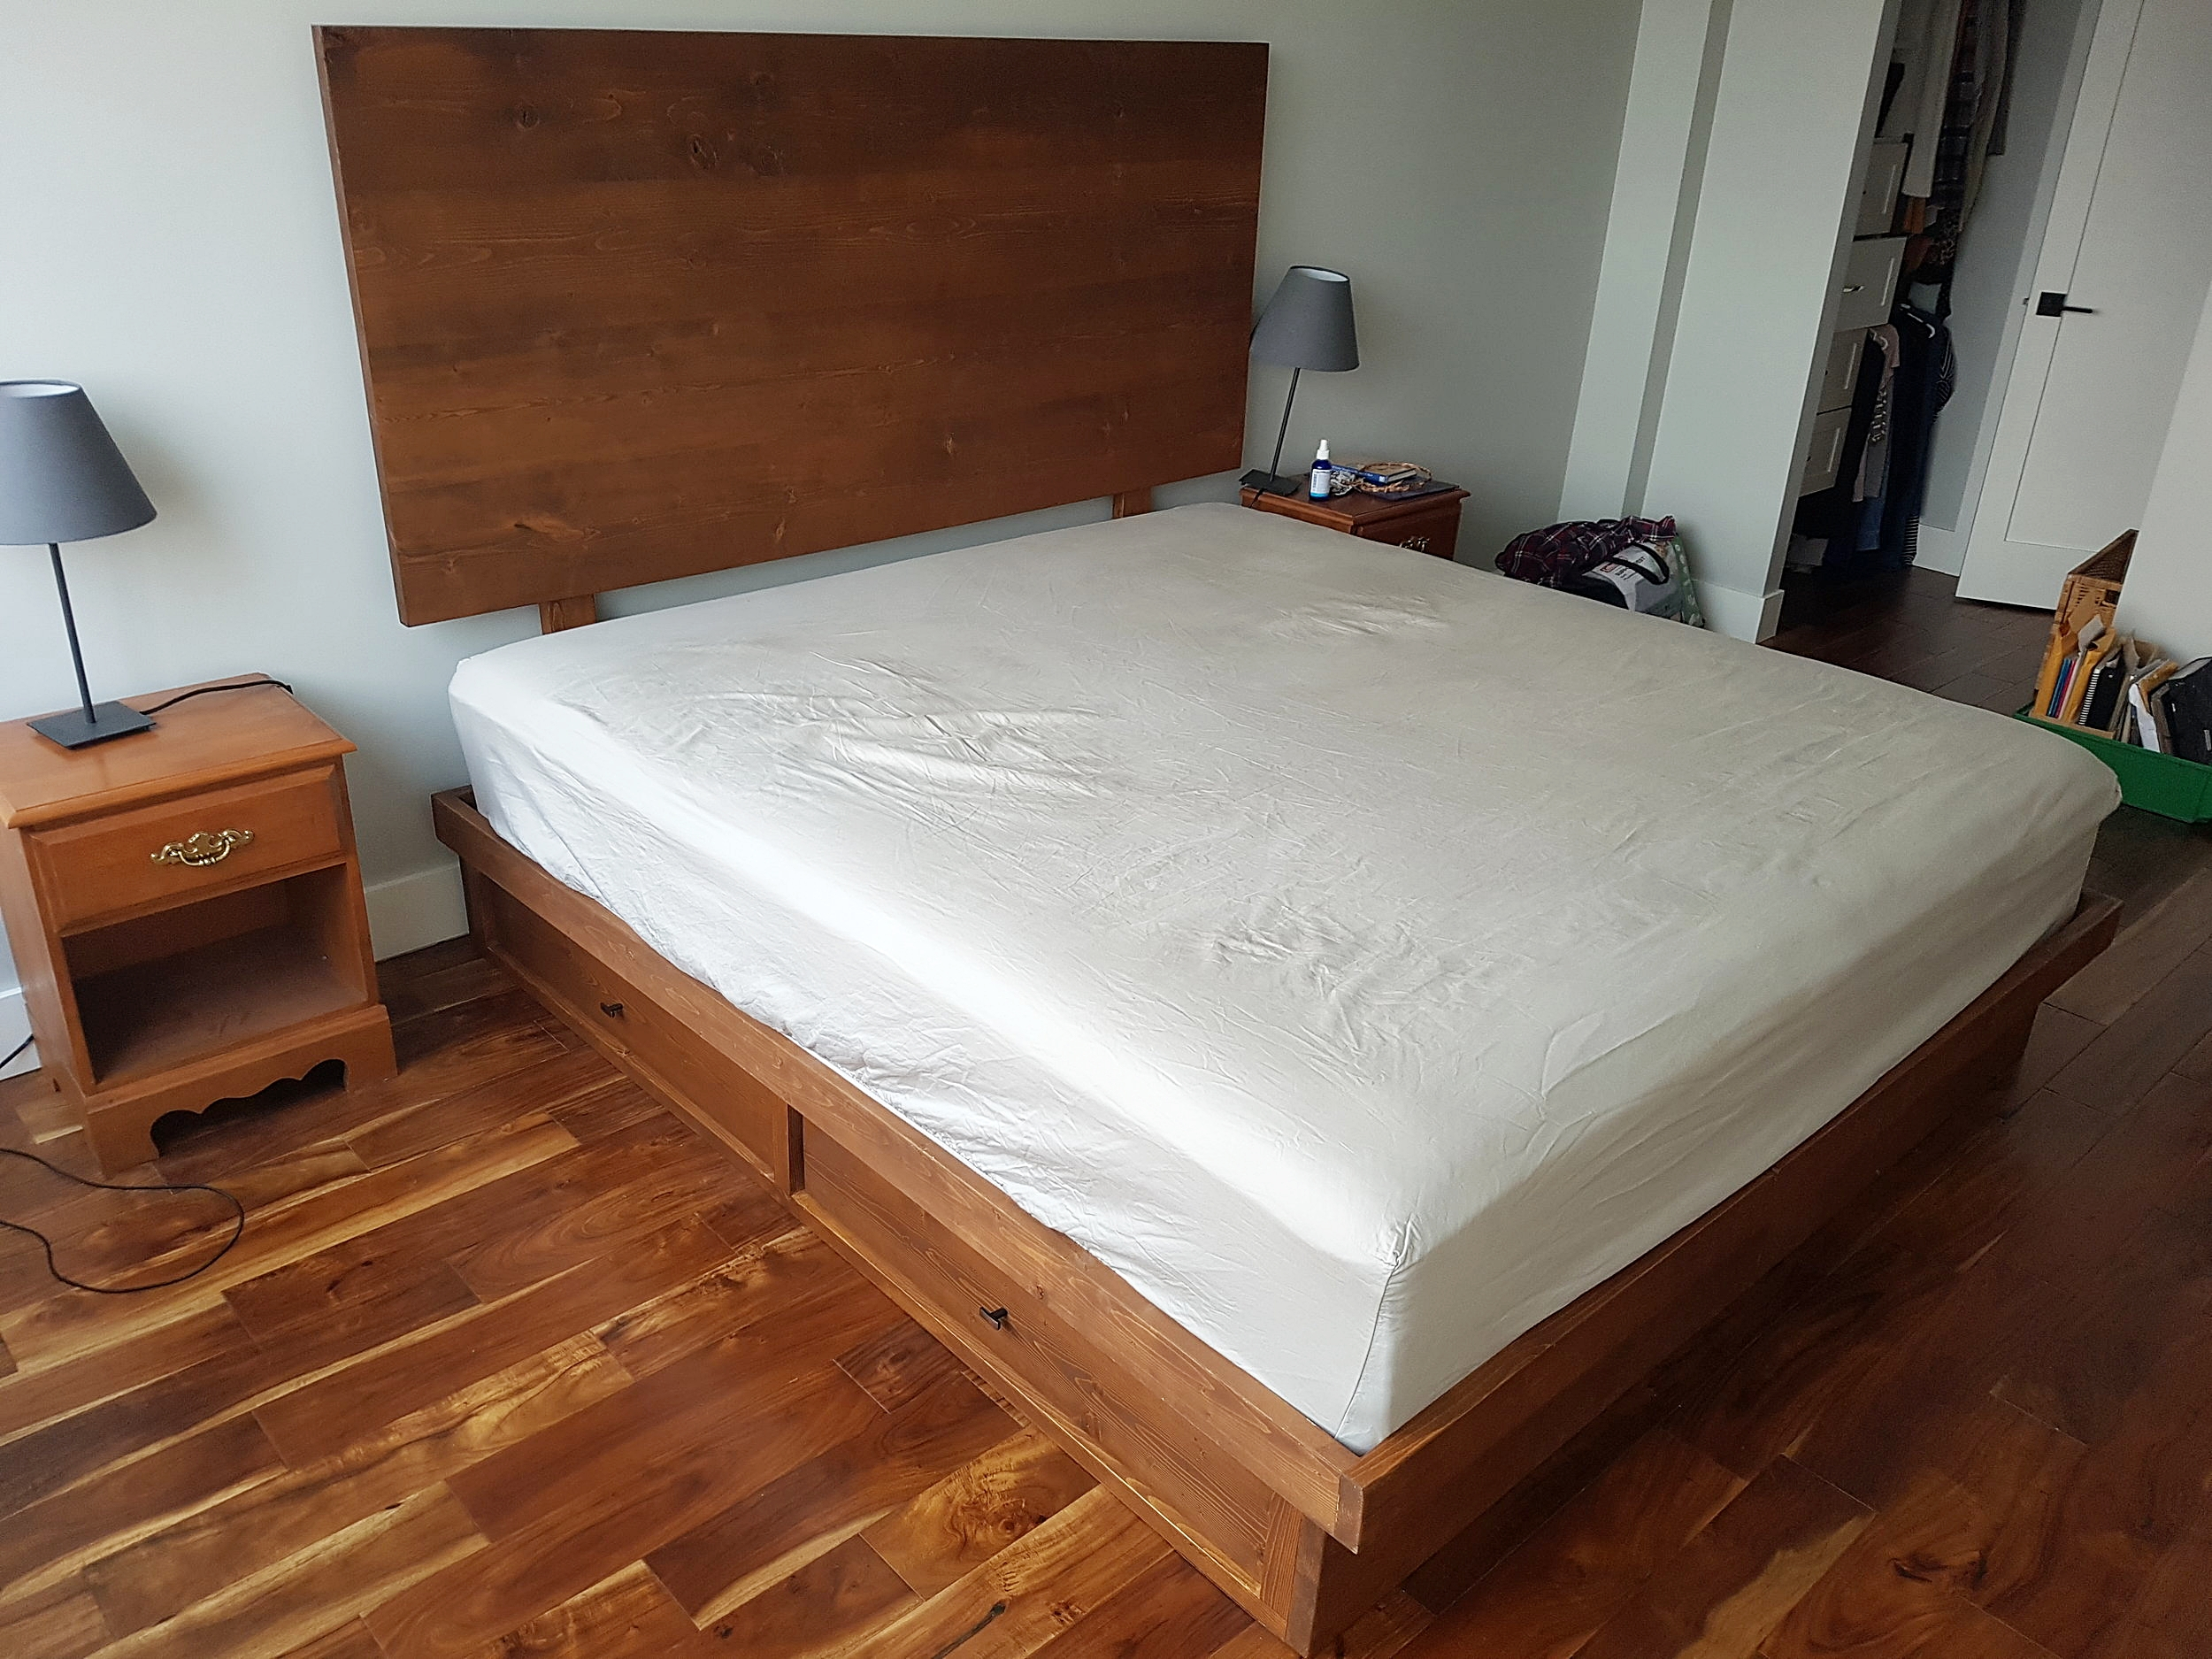 Mid-Century Modern King Bed Frame with Drawers